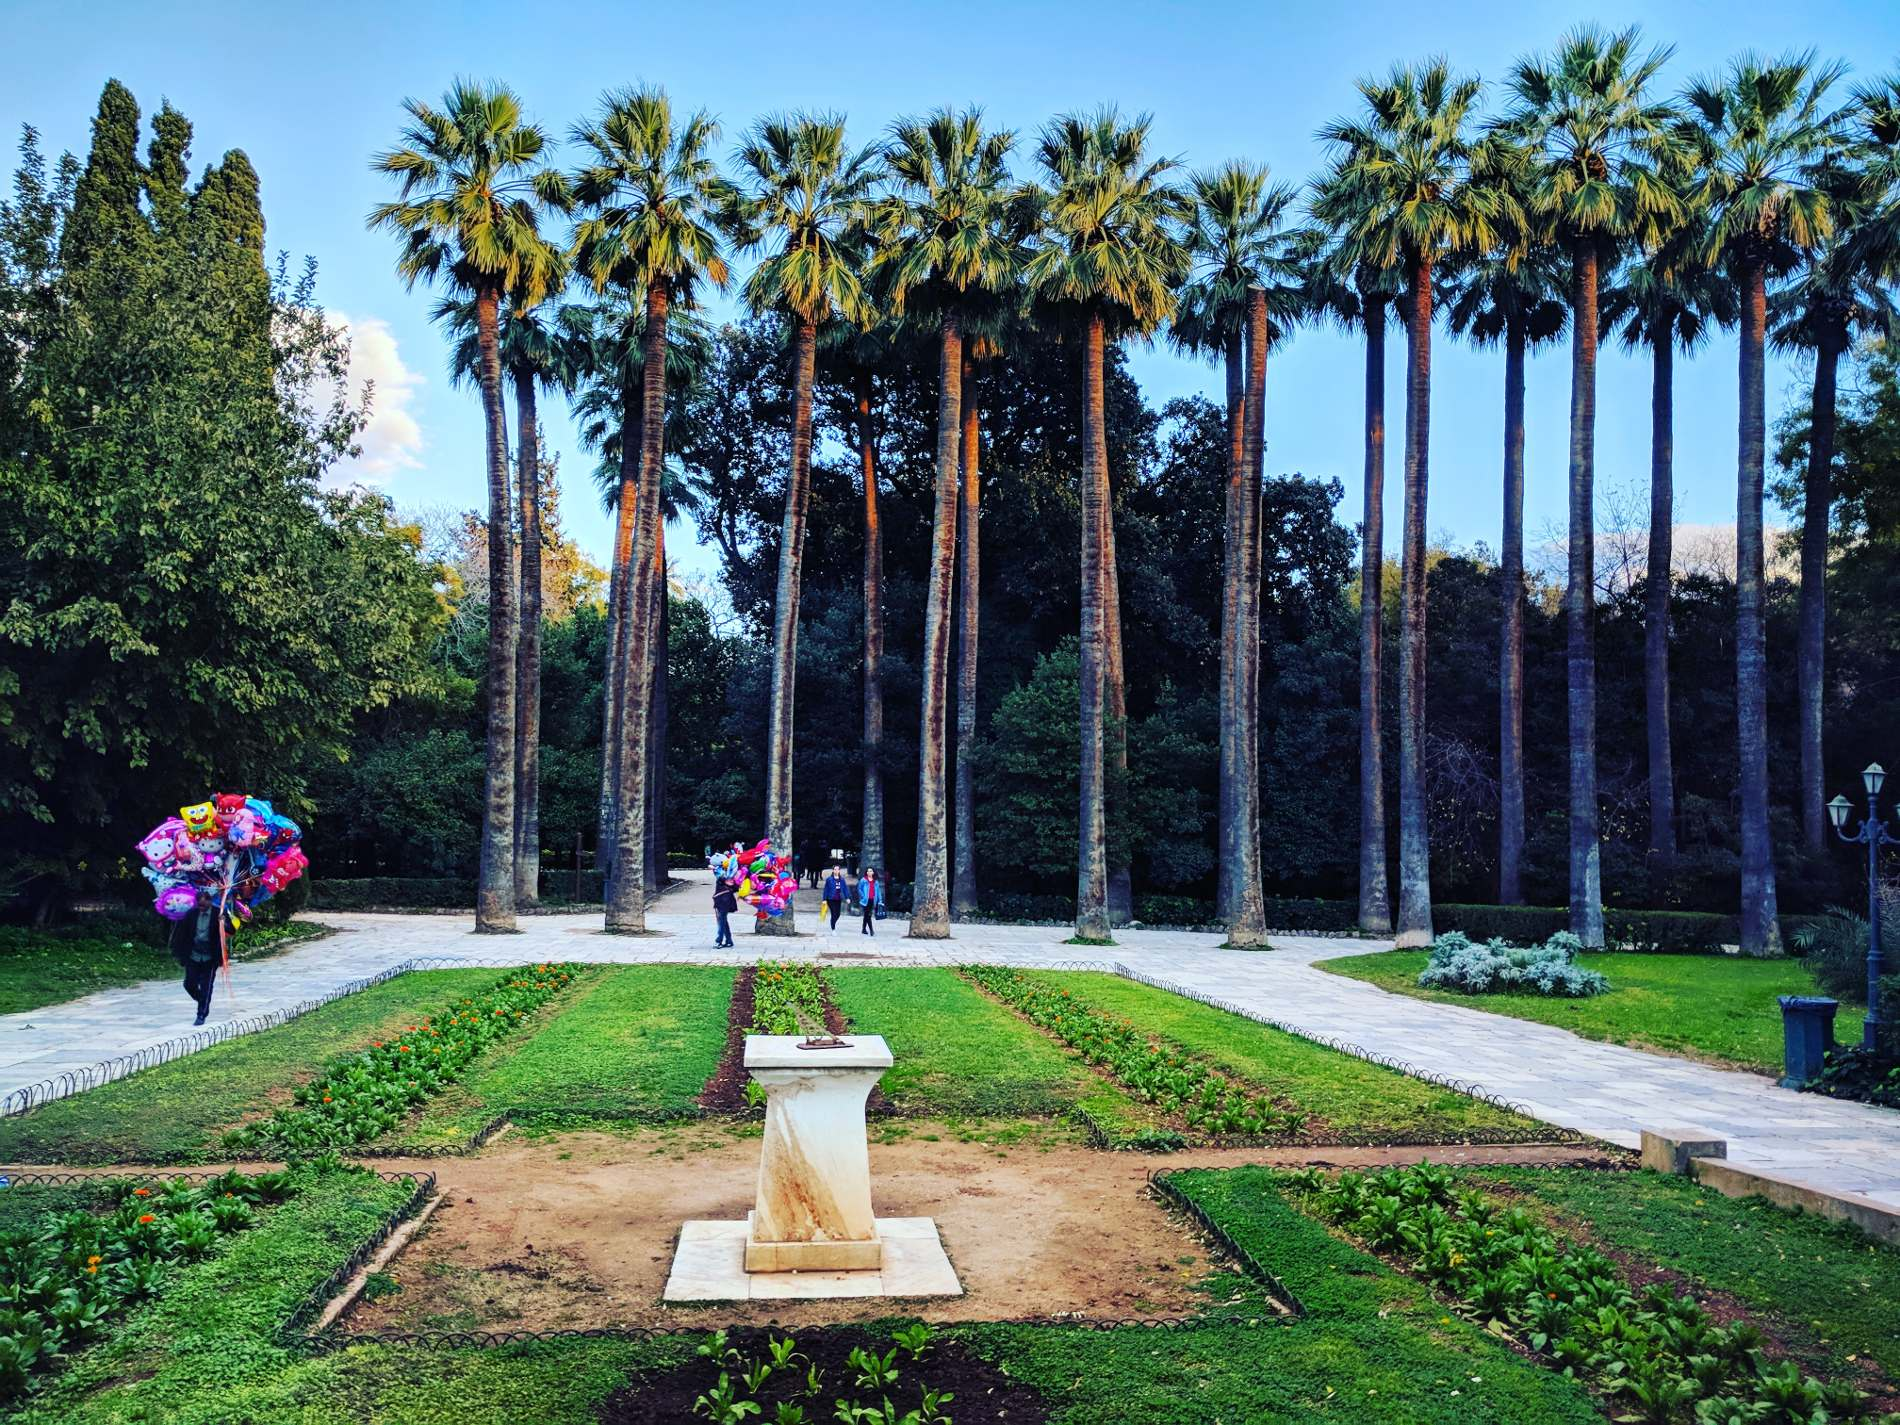 The palm-trees at the entrance of the National Garden. Source: Truevoyagers